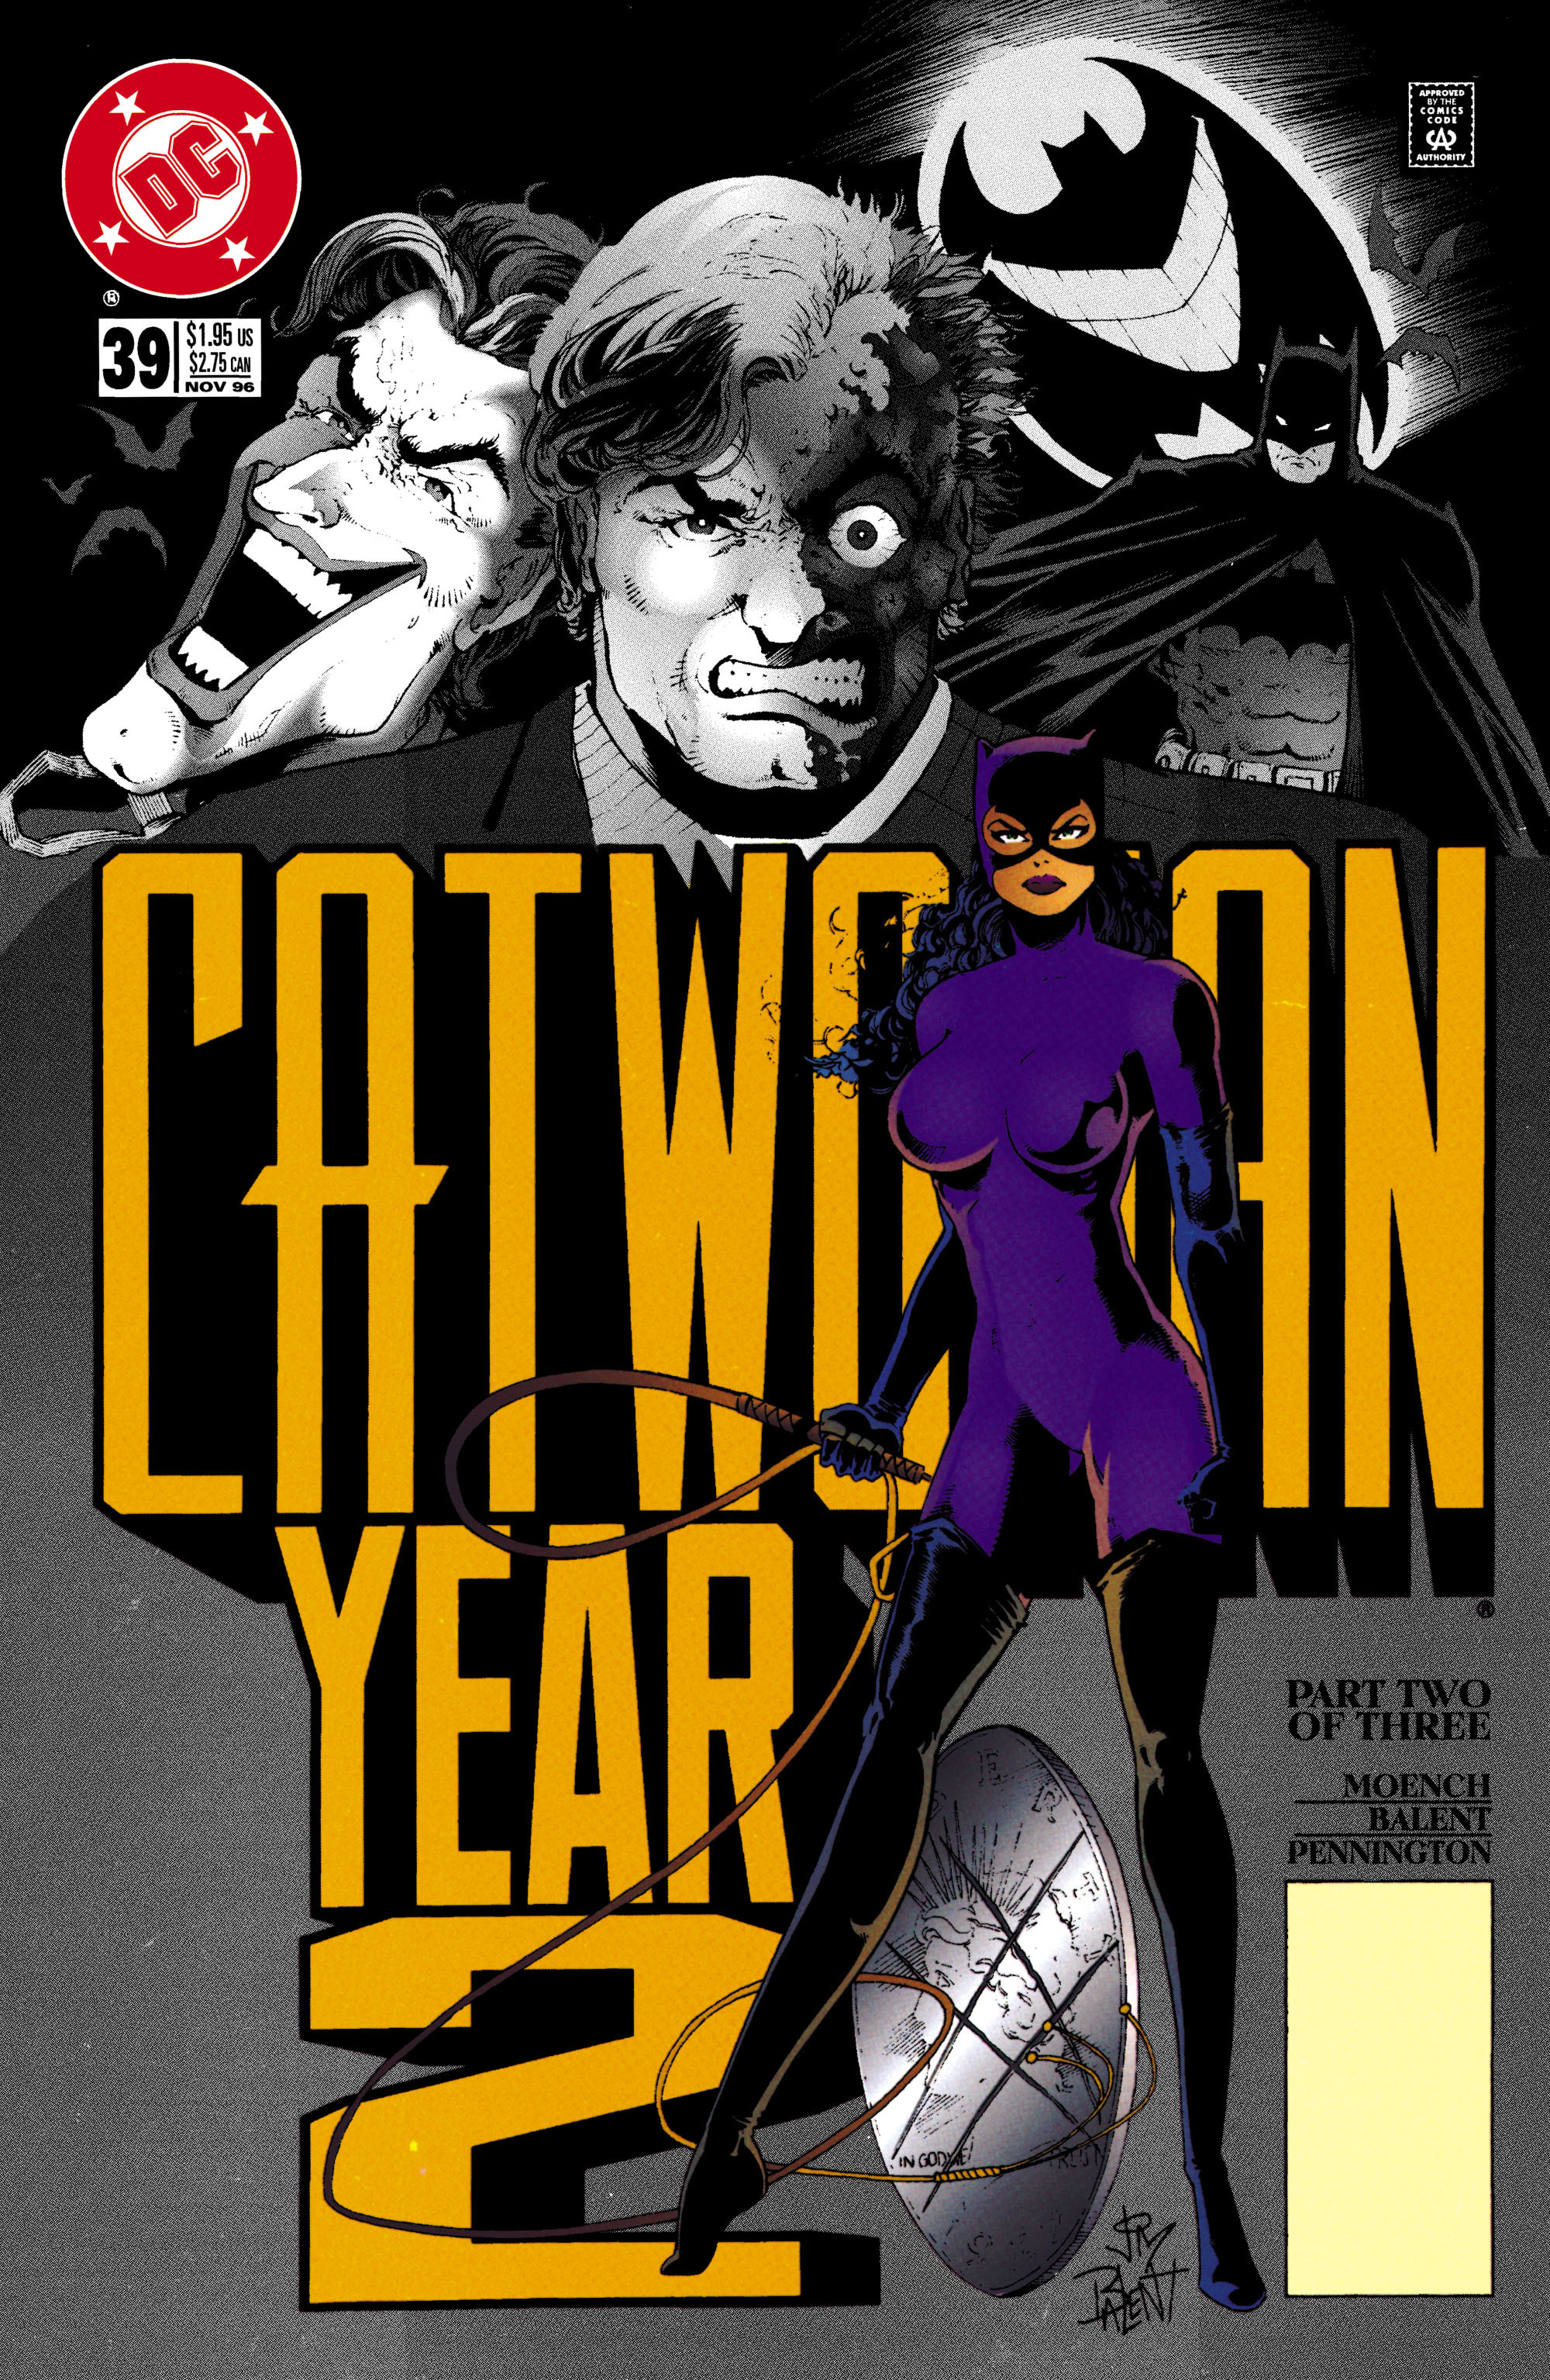 Catwoman (1993) Issue #39 #44 - English 1